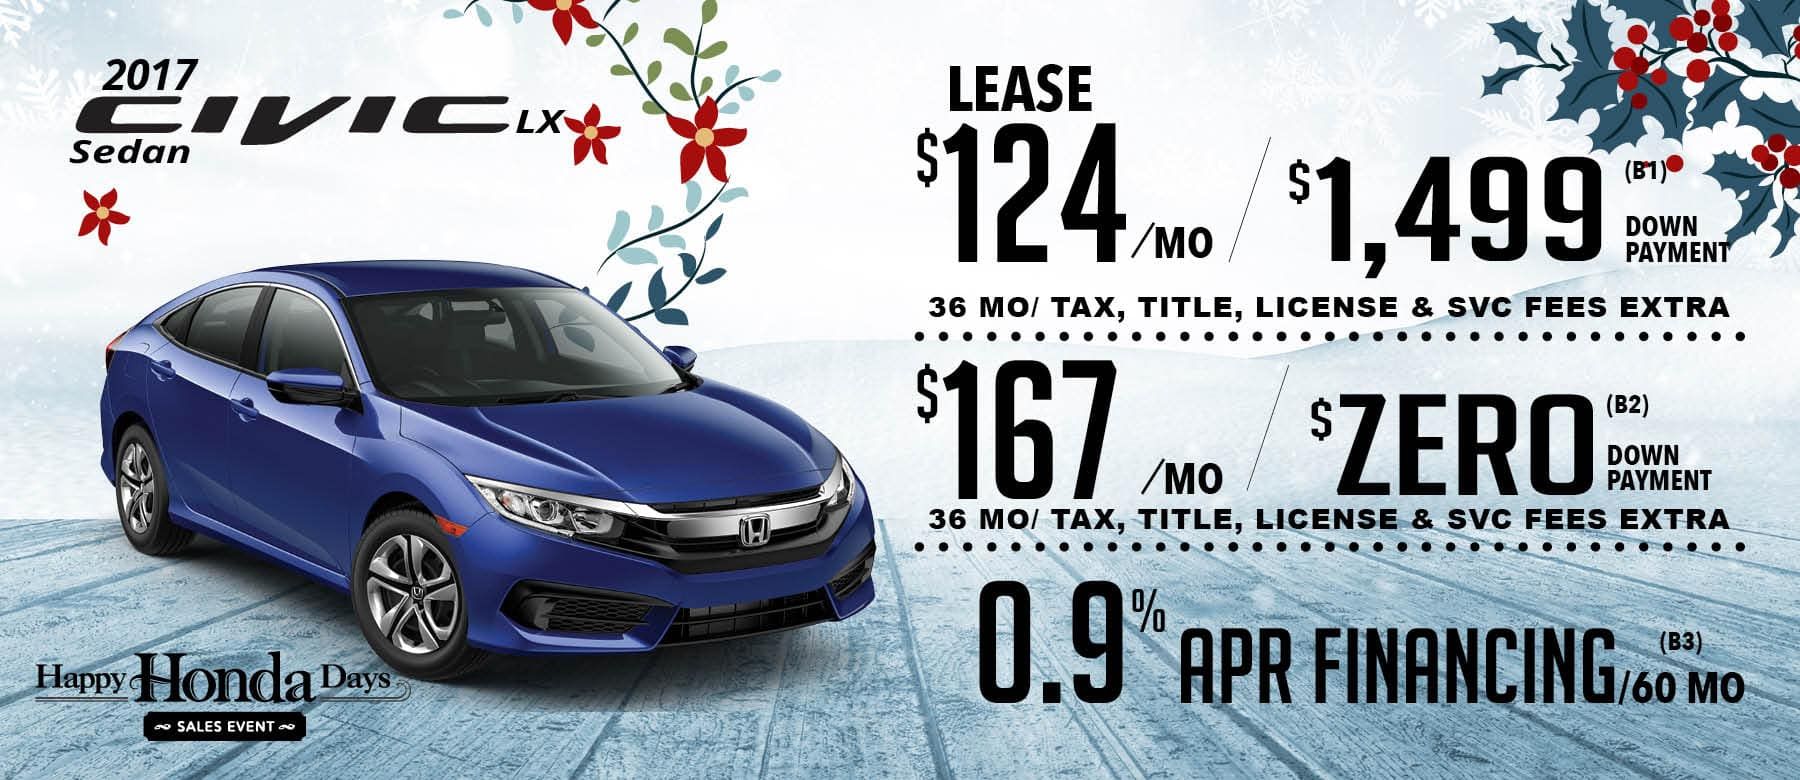 New Honda Special Offers - Sarasota's Best Deals at Wilde Honda Sarasota